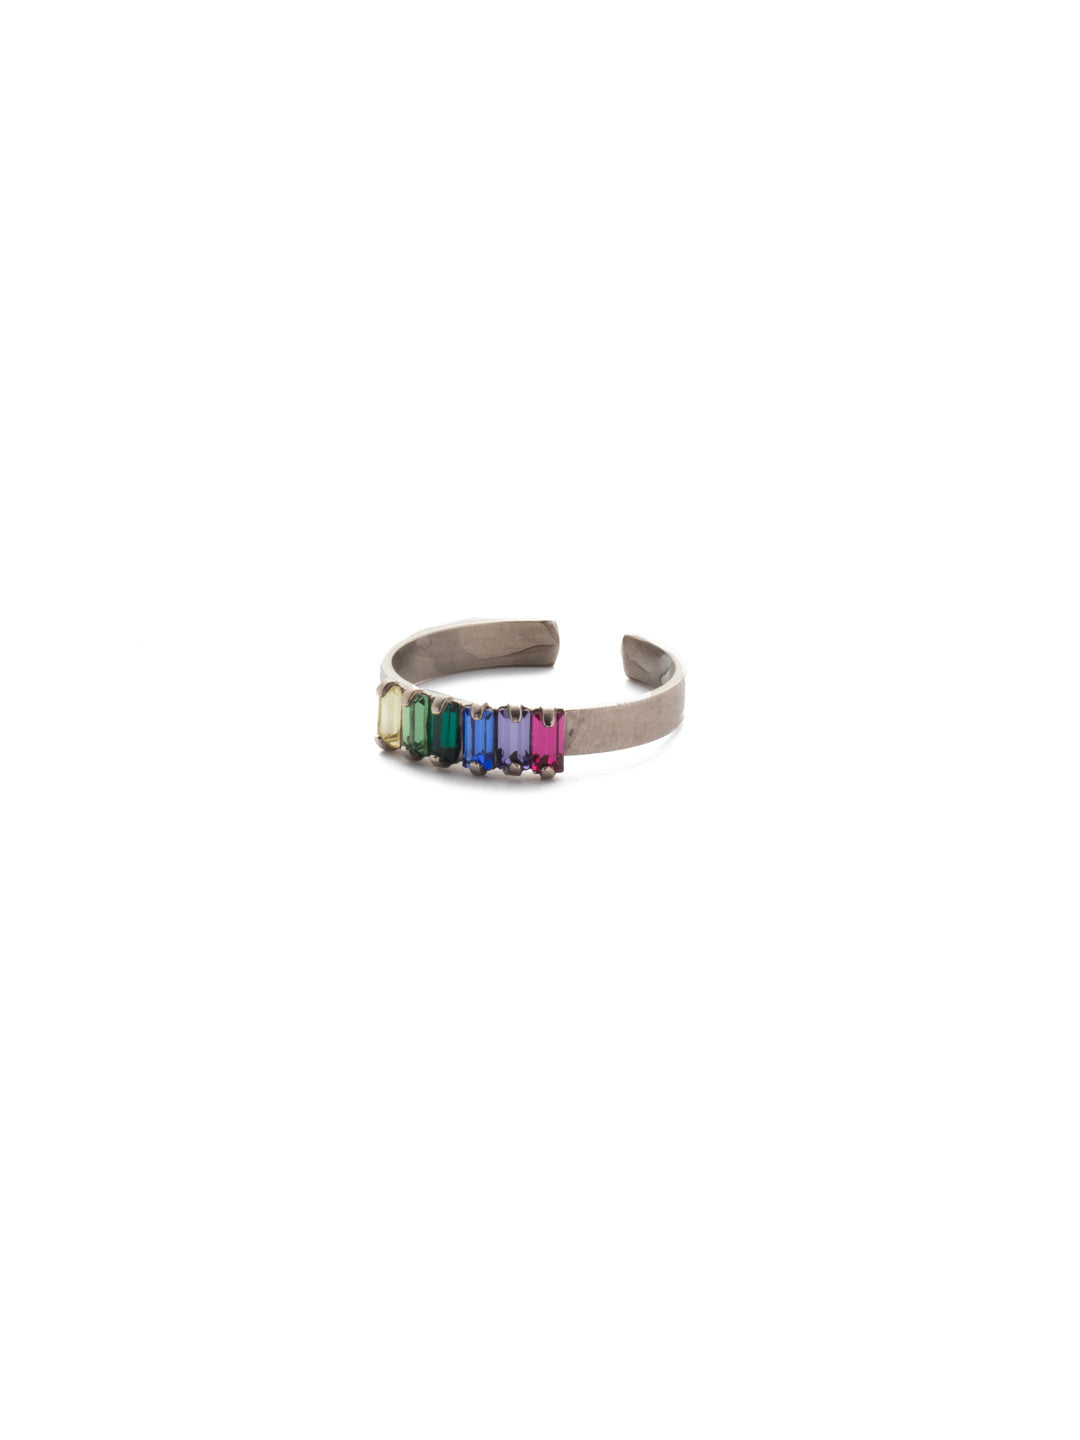 Band Together Adjustable Ring - RDN440ASPRI